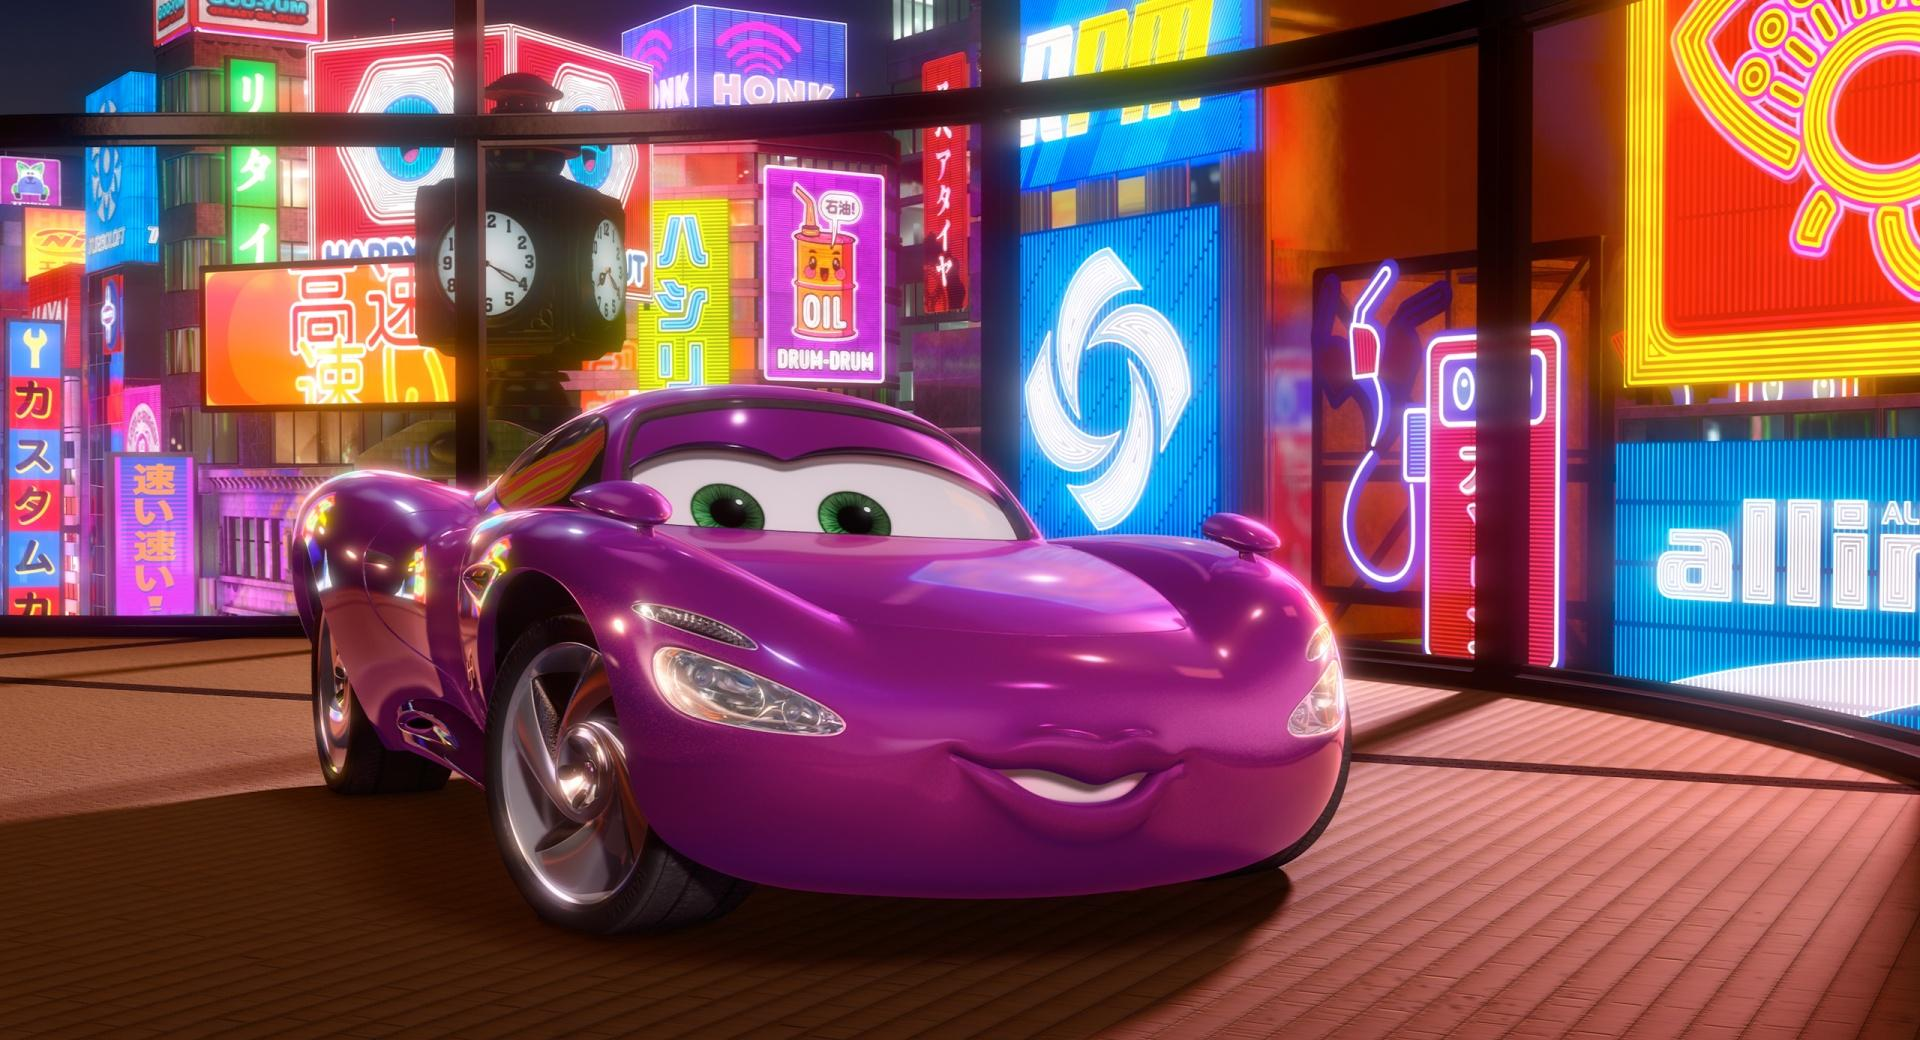 Cars 2 (2011) wallpapers HD quality